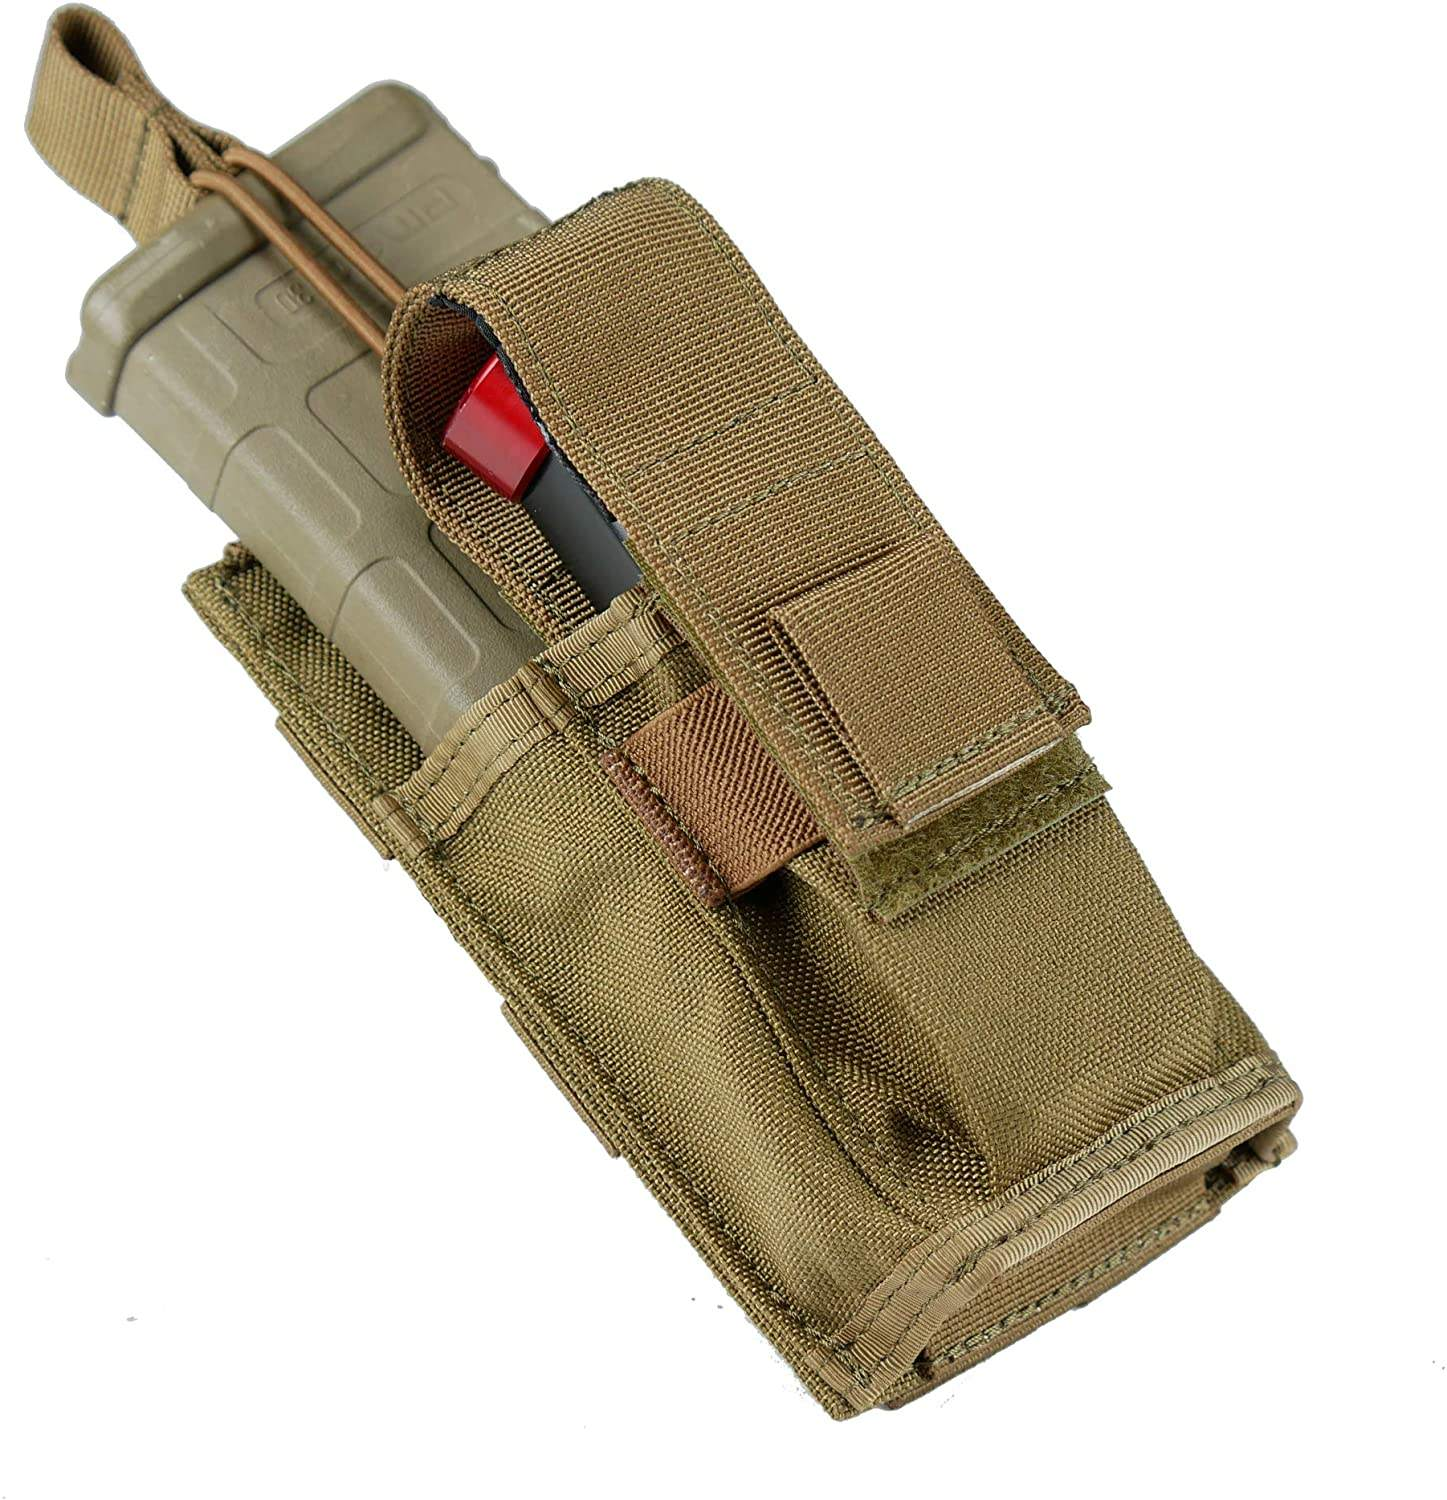 Tactical EDC EMT Tool Organizer Holder 1000D Single Pistol Mag Pouch Molle Magazine Pouch